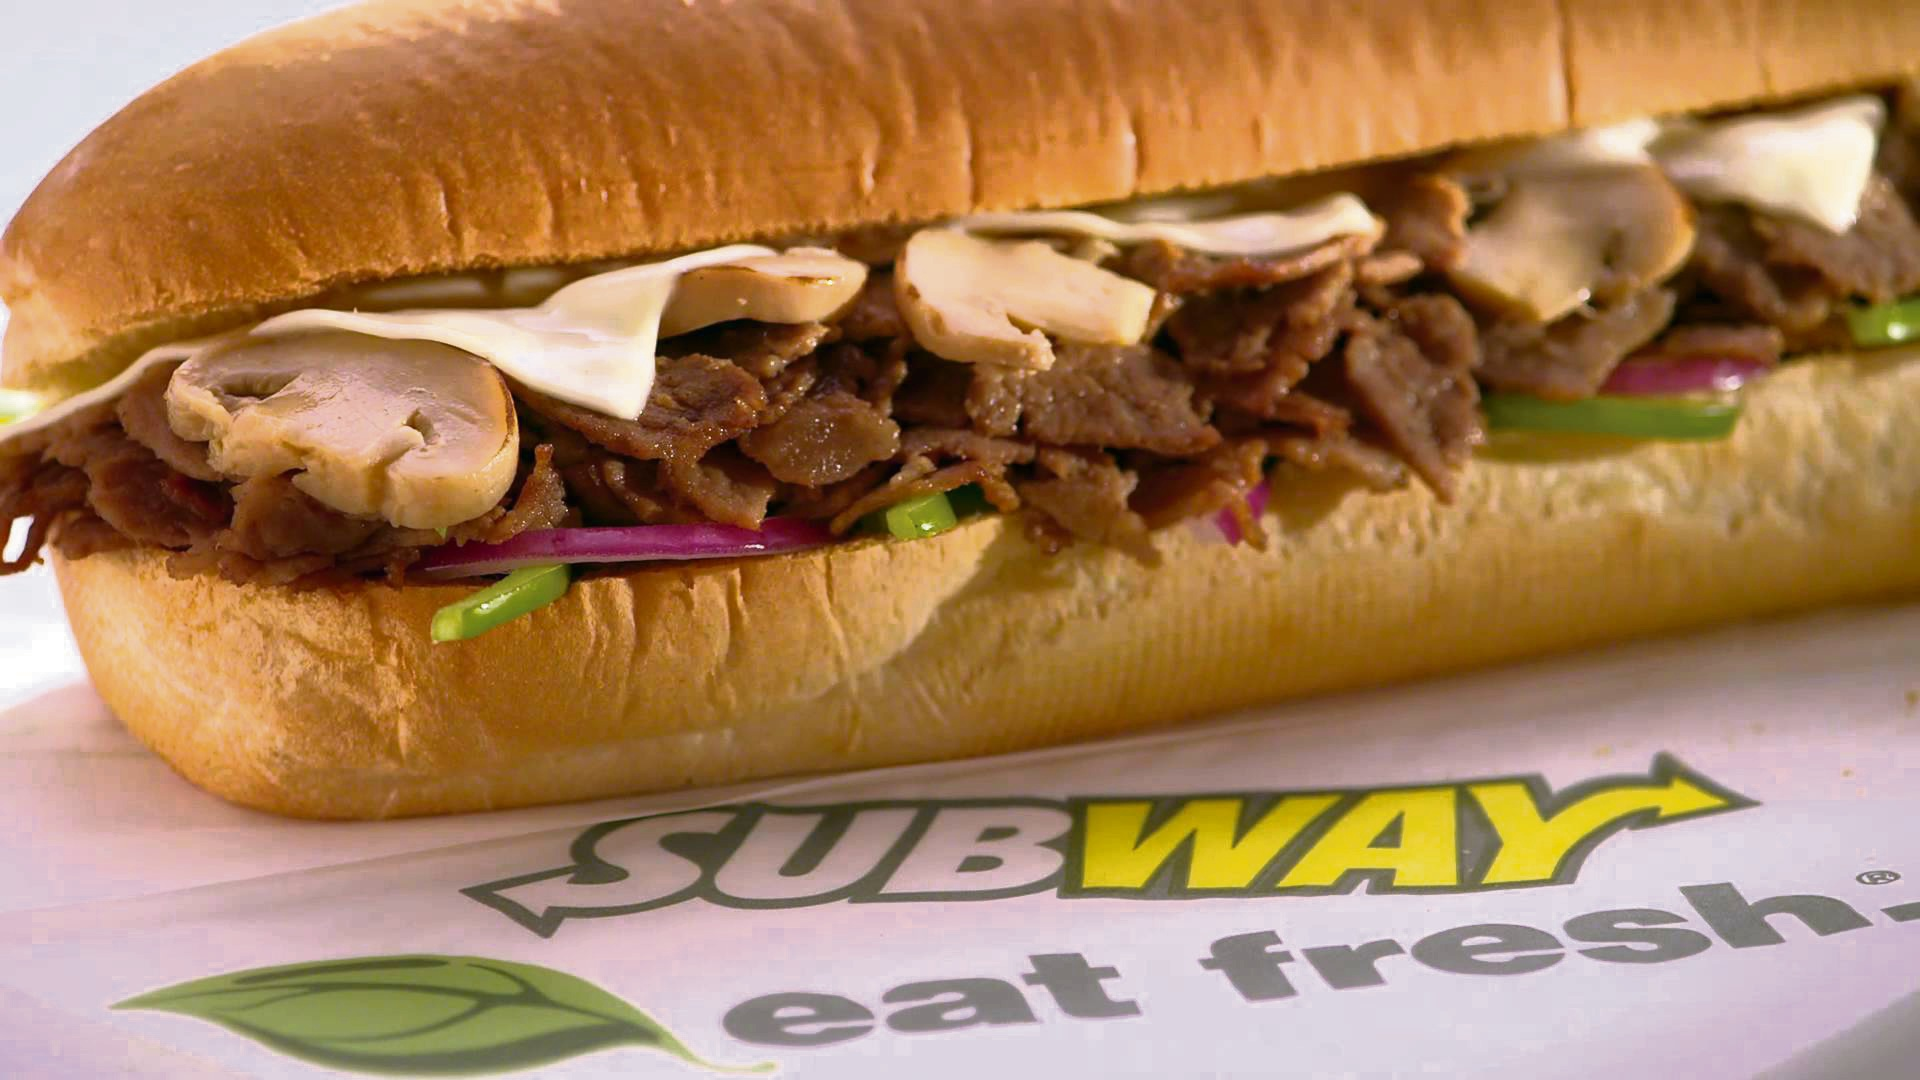 Subway giving away free subs, feeding the needy this week